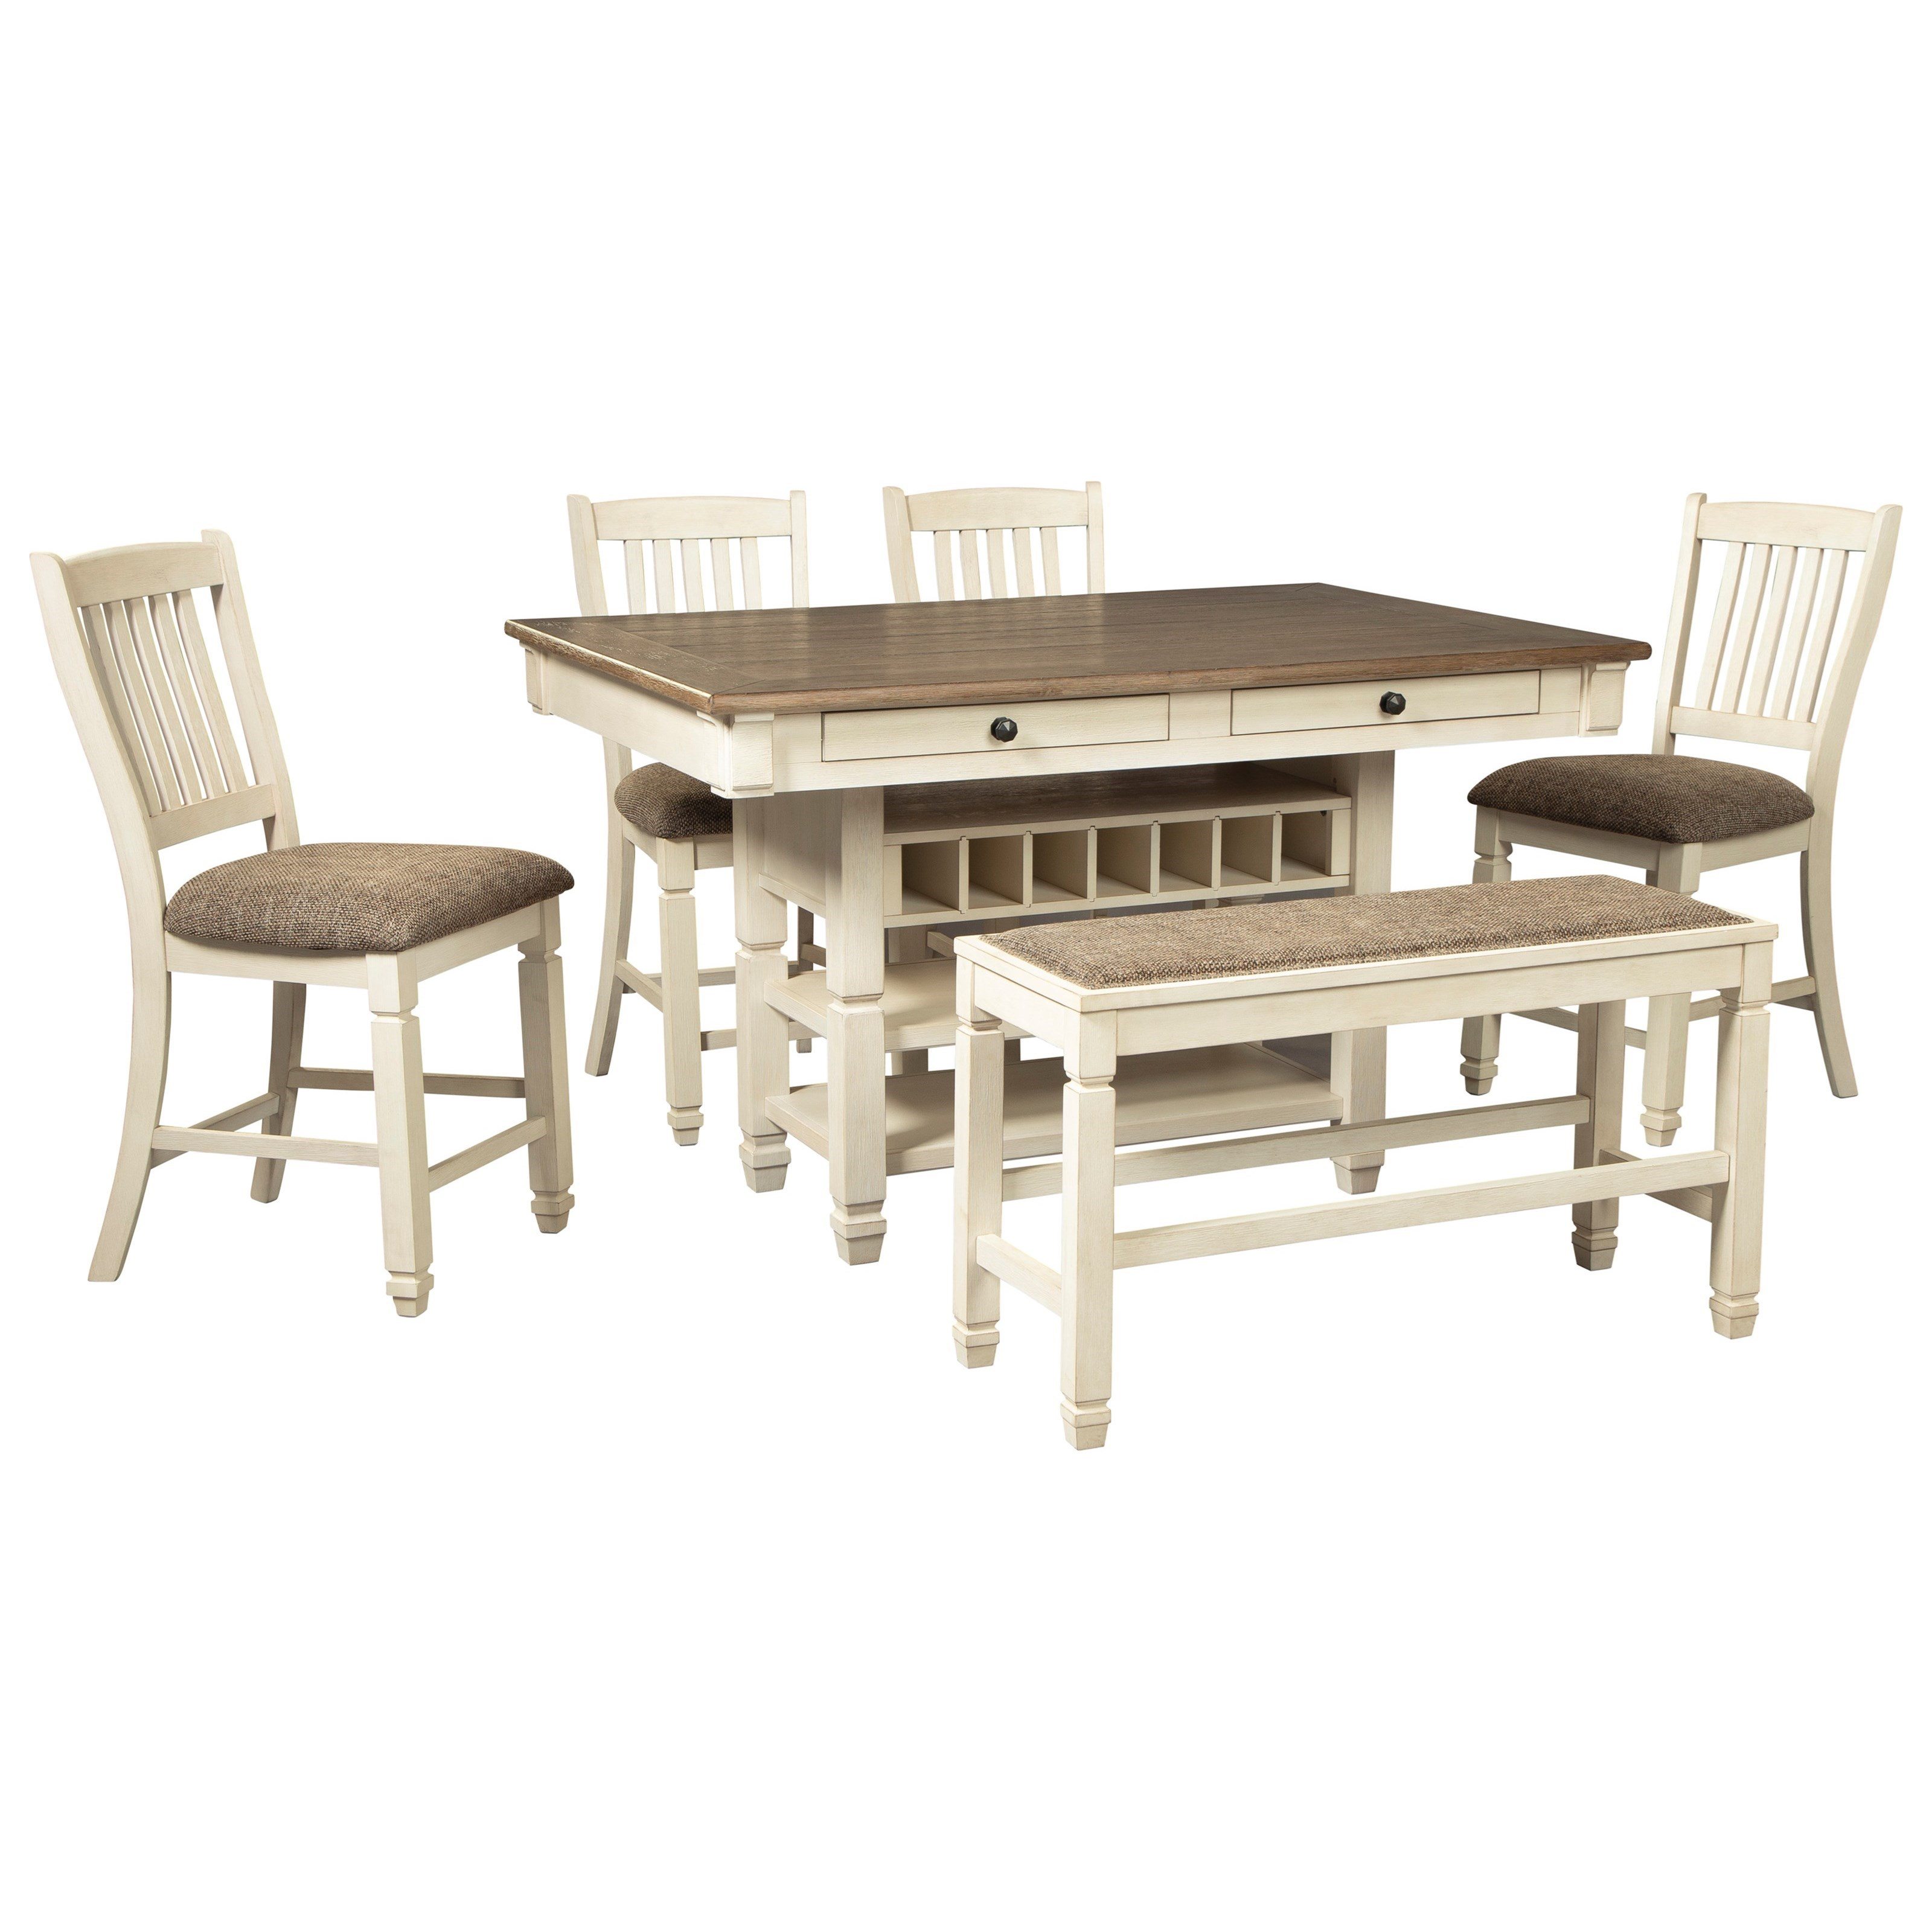 Bolanburg 6-Piece Counter Table Set with Bench by Signature Design by Ashley at Sparks HomeStore